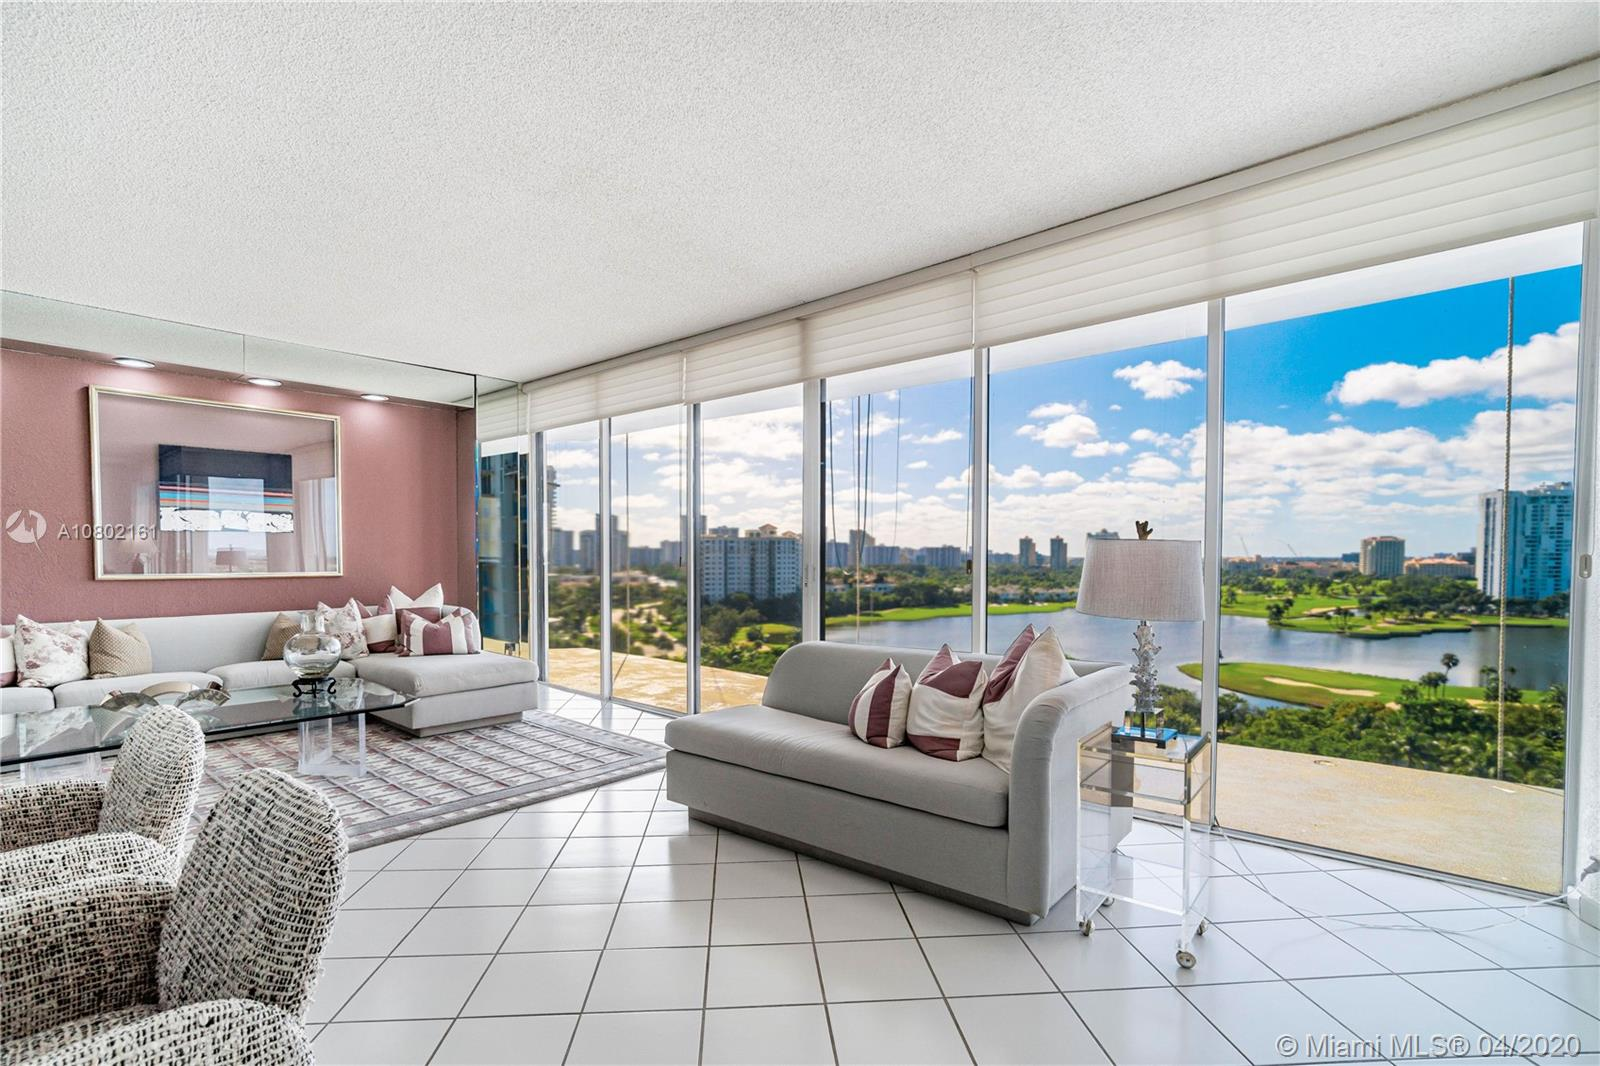 20281 E COUNTRY CLUB DR #1001 For Sale A10802161, FL